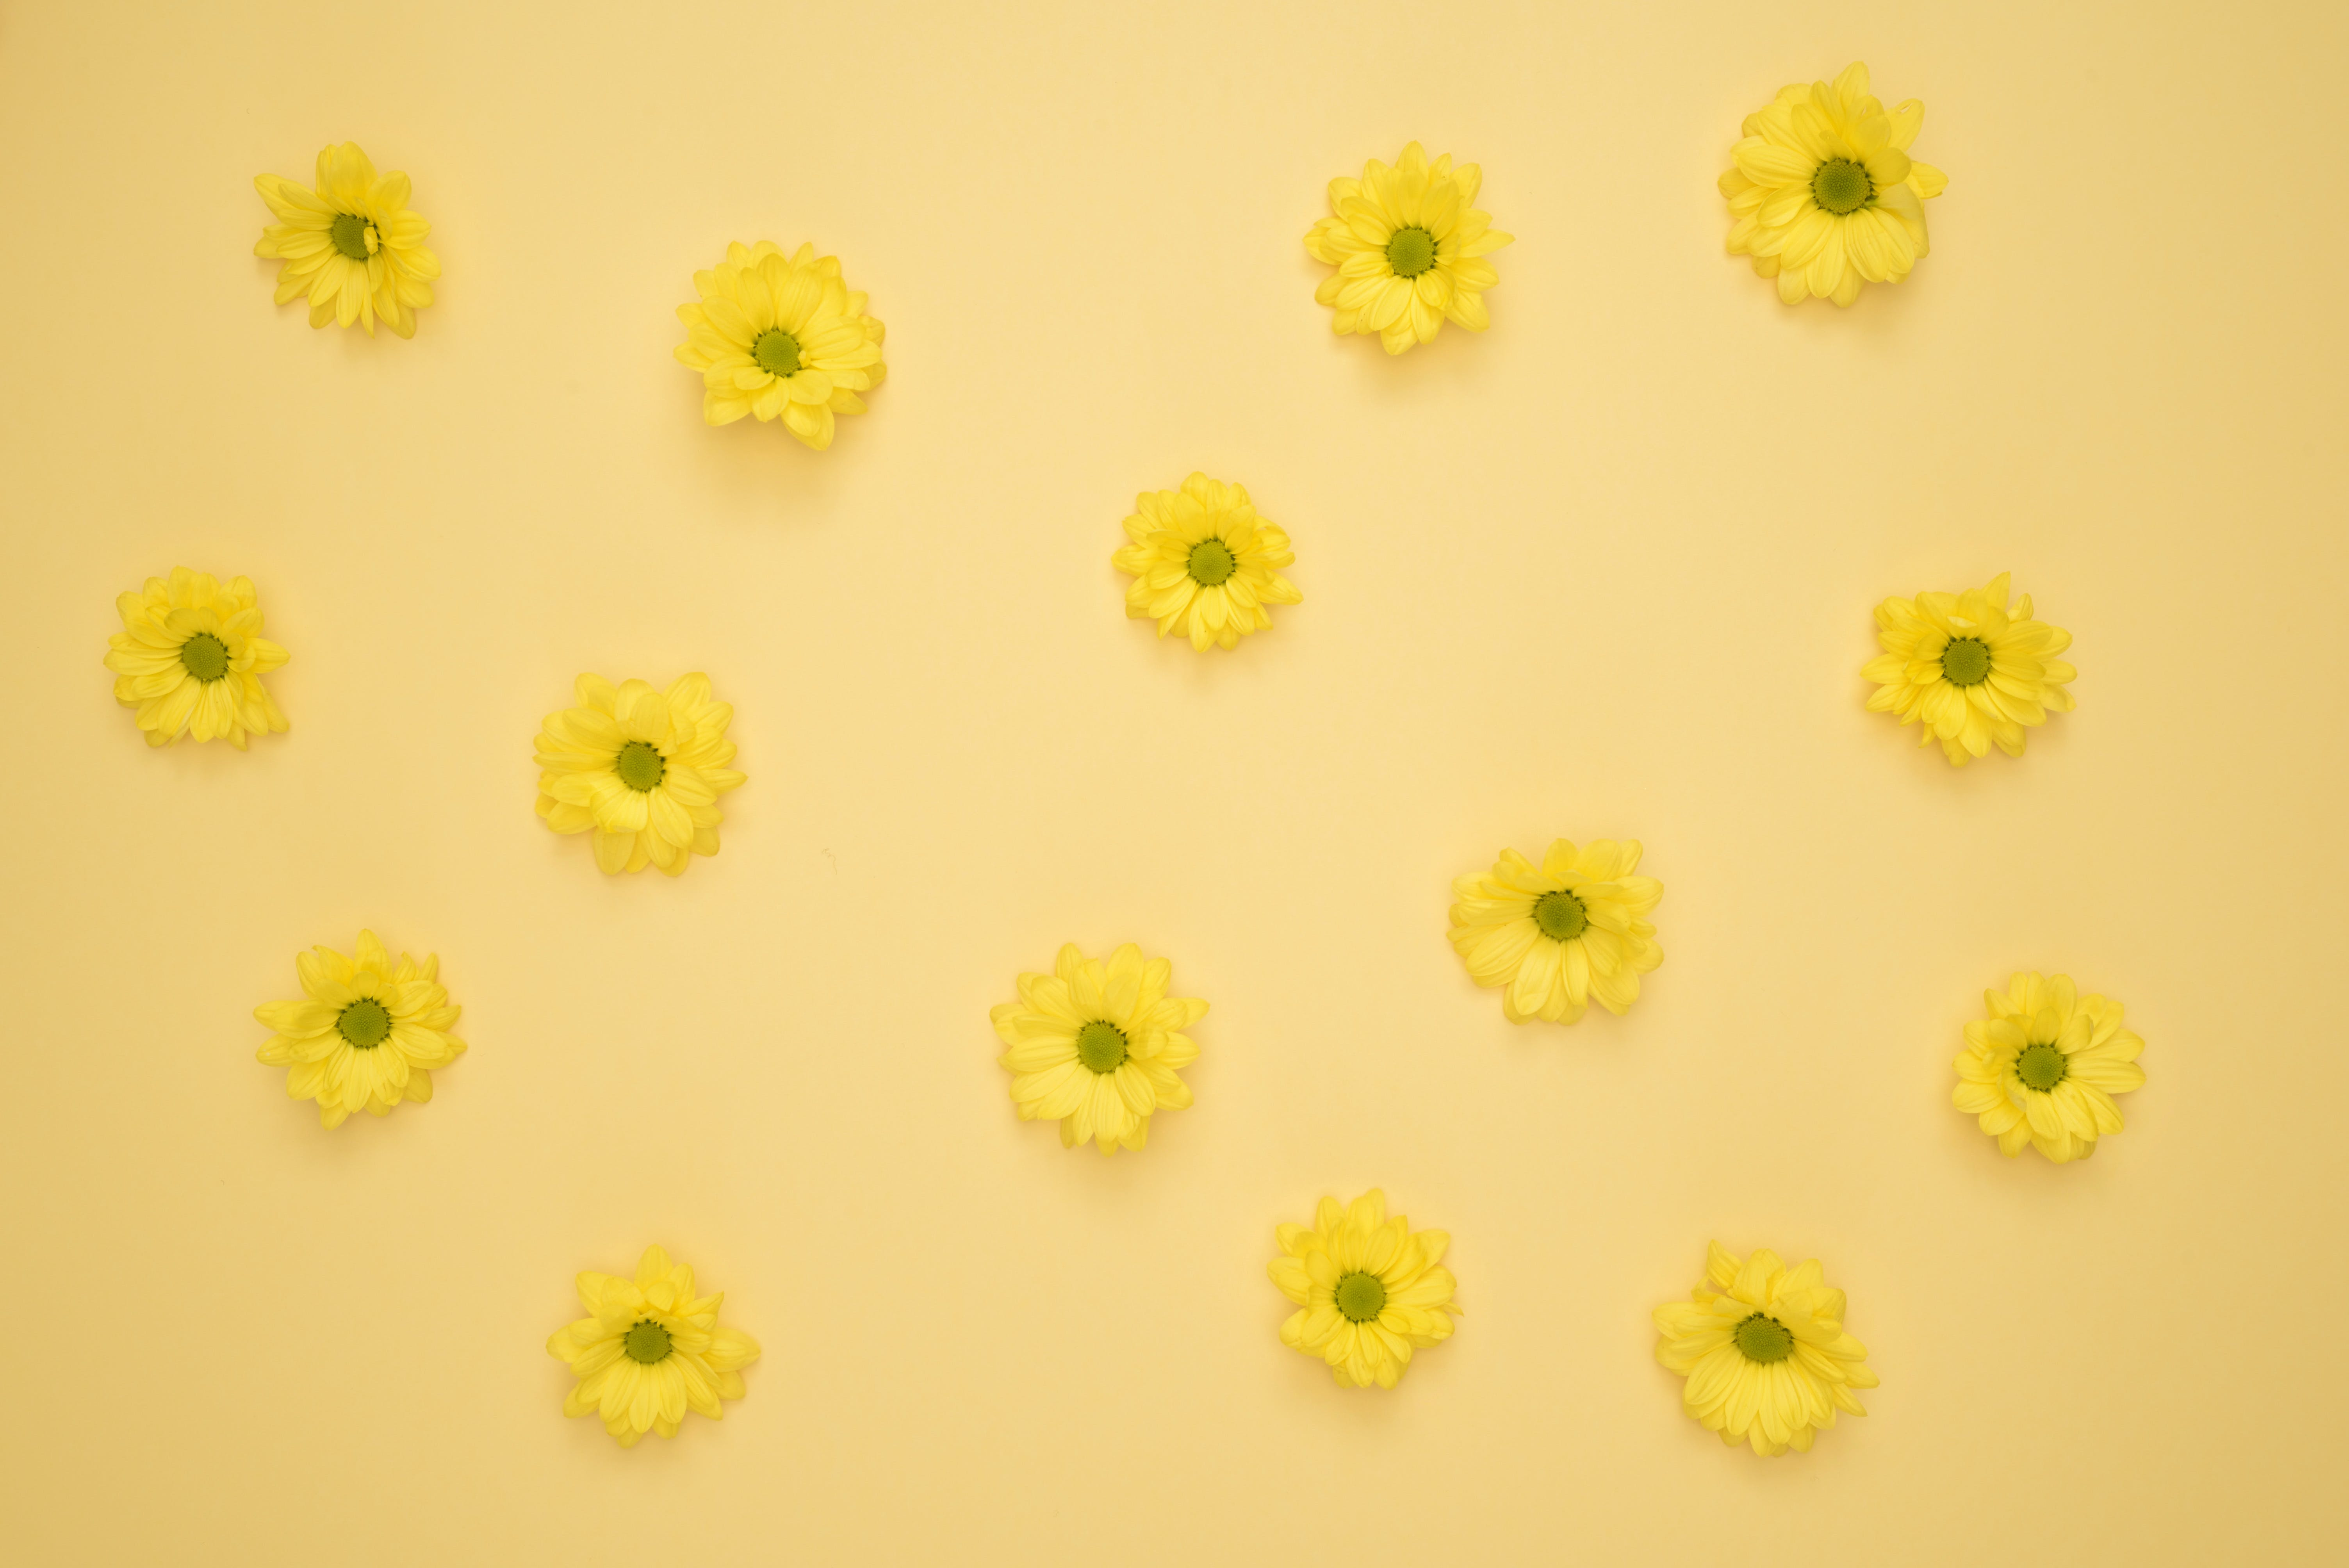 Yellow Daisies Laid on Yellow Surface